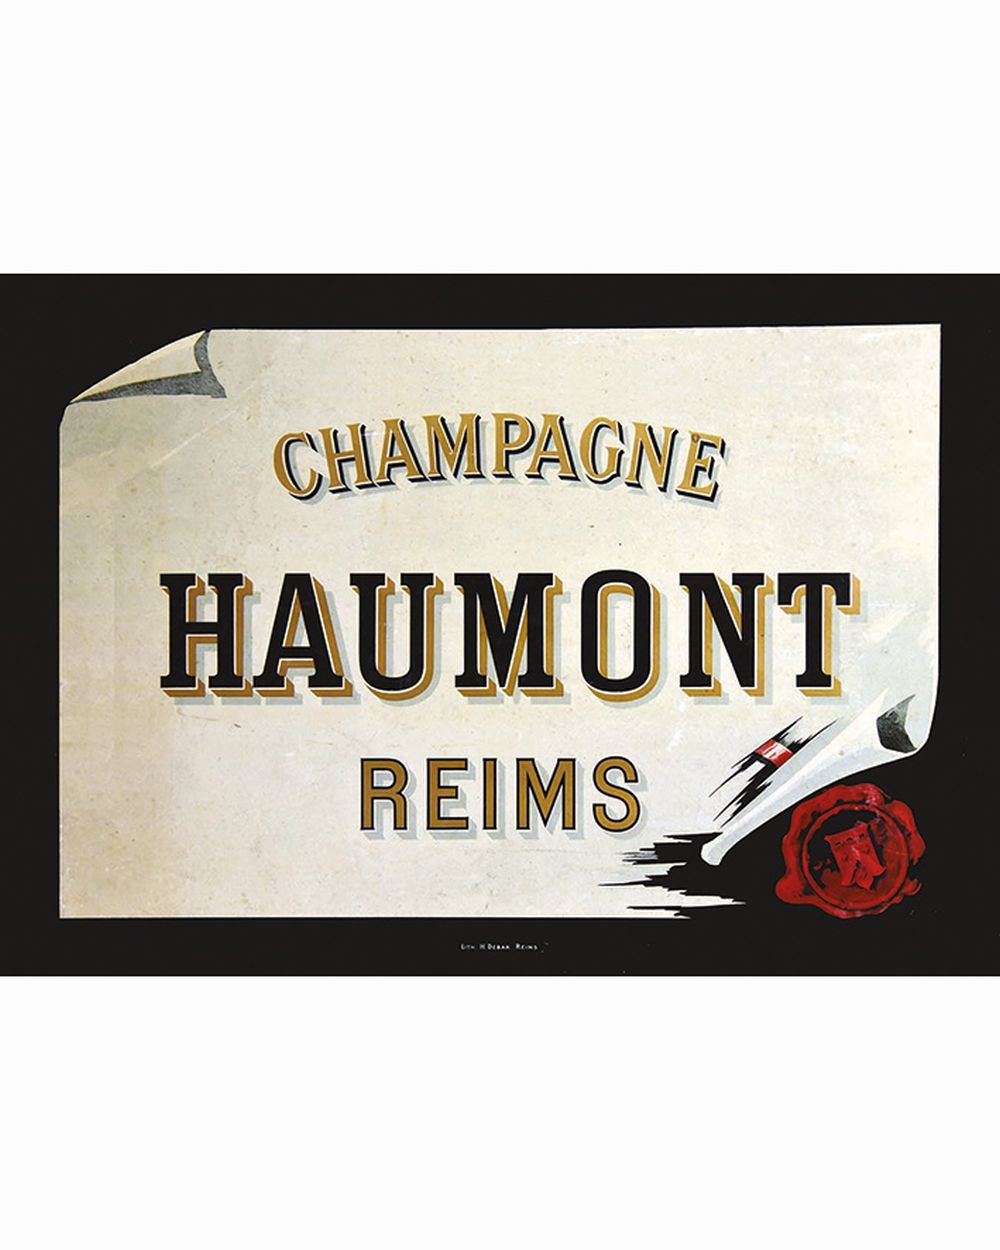 Champagne Haumont Reims     vers 1930